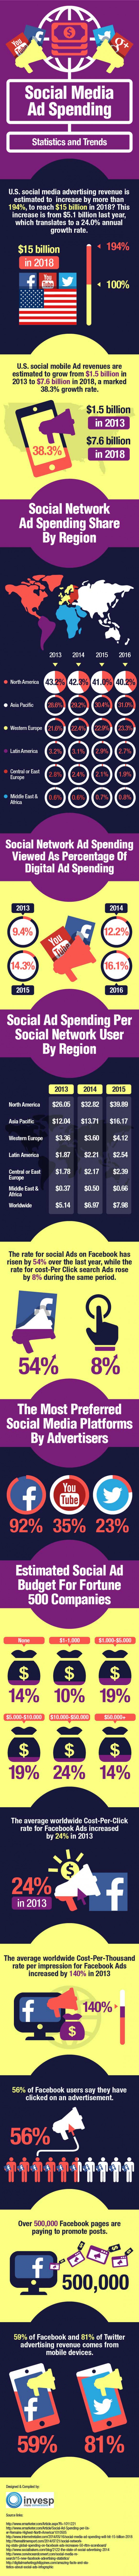 Social Media Ad Spending  in Numbers